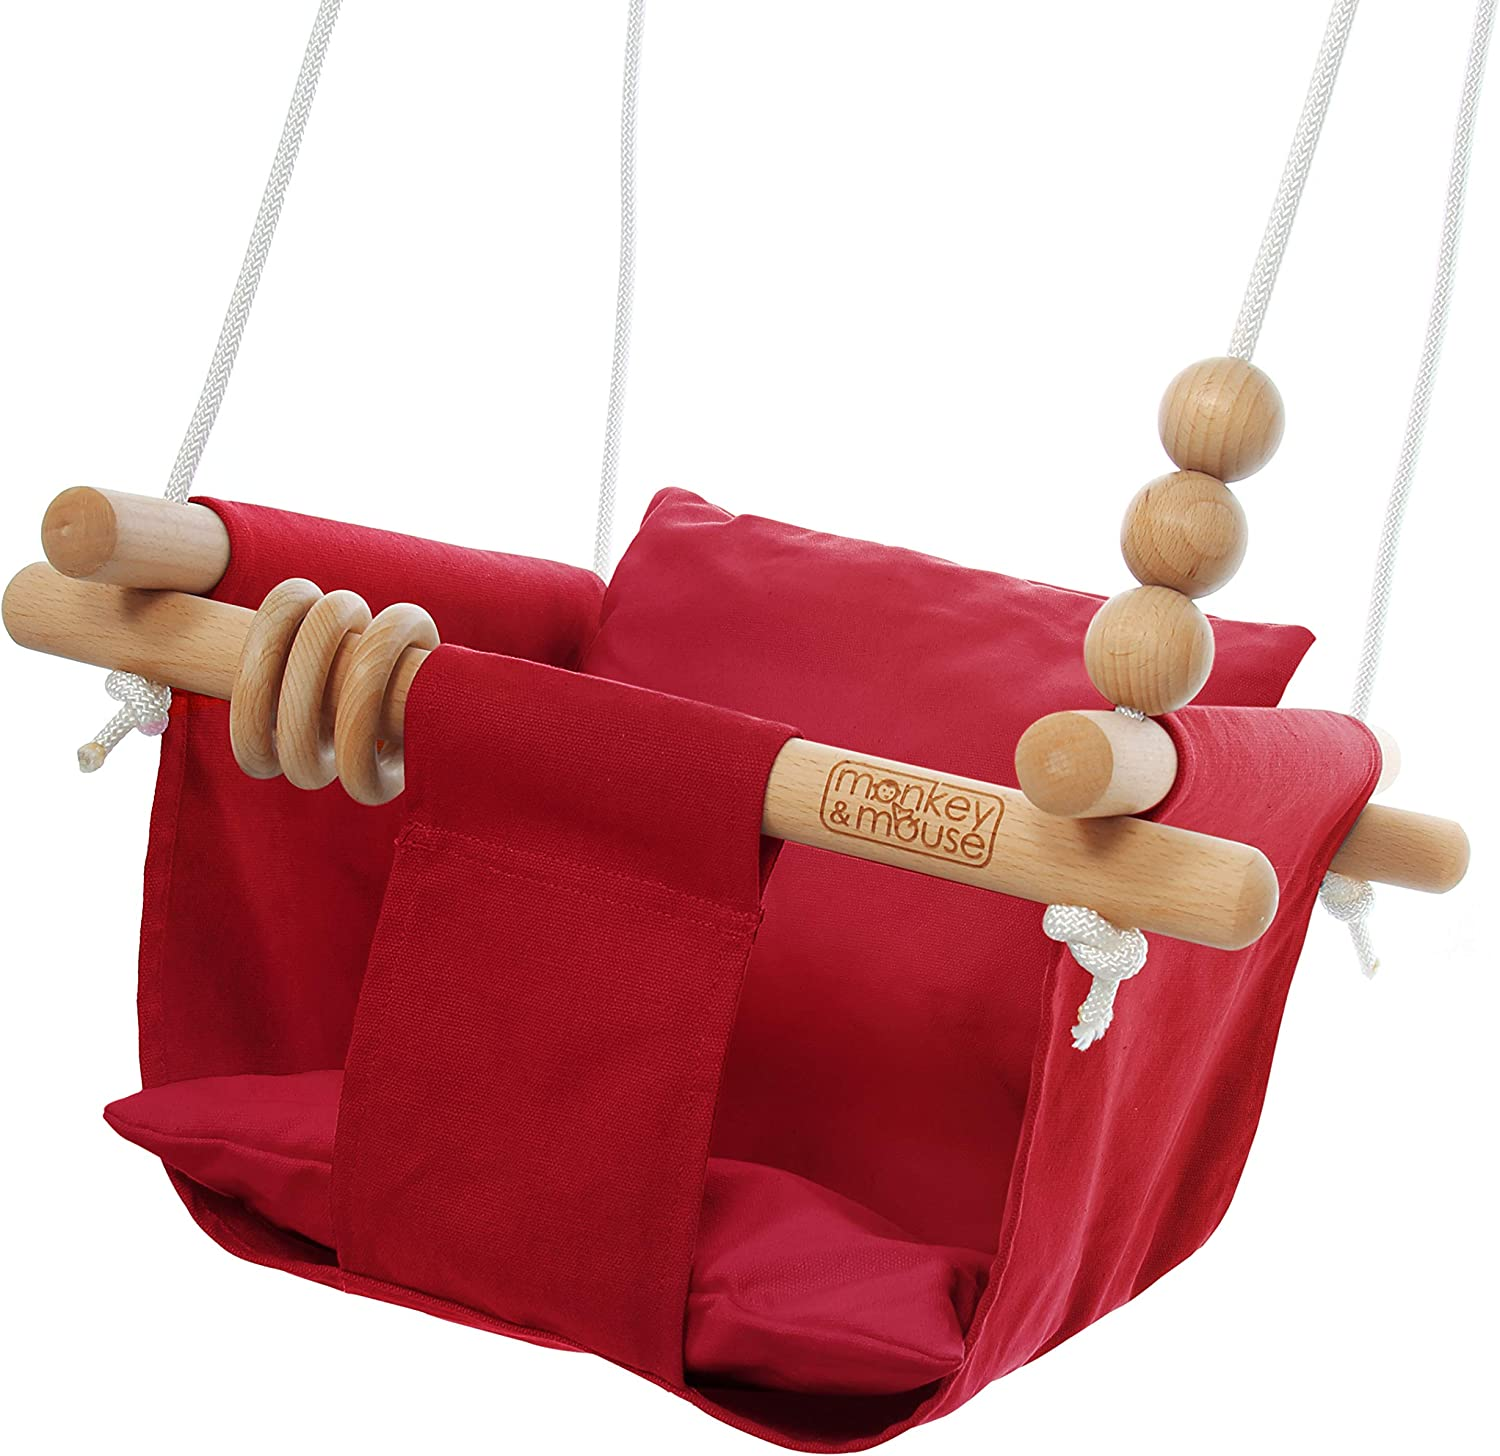 Monkey & Mouse Secure Canvas and Wooden Hanging Swing Seat Chair with Baby, Infant, Toddler, Kids Toys - Indoor Hammock (Red)